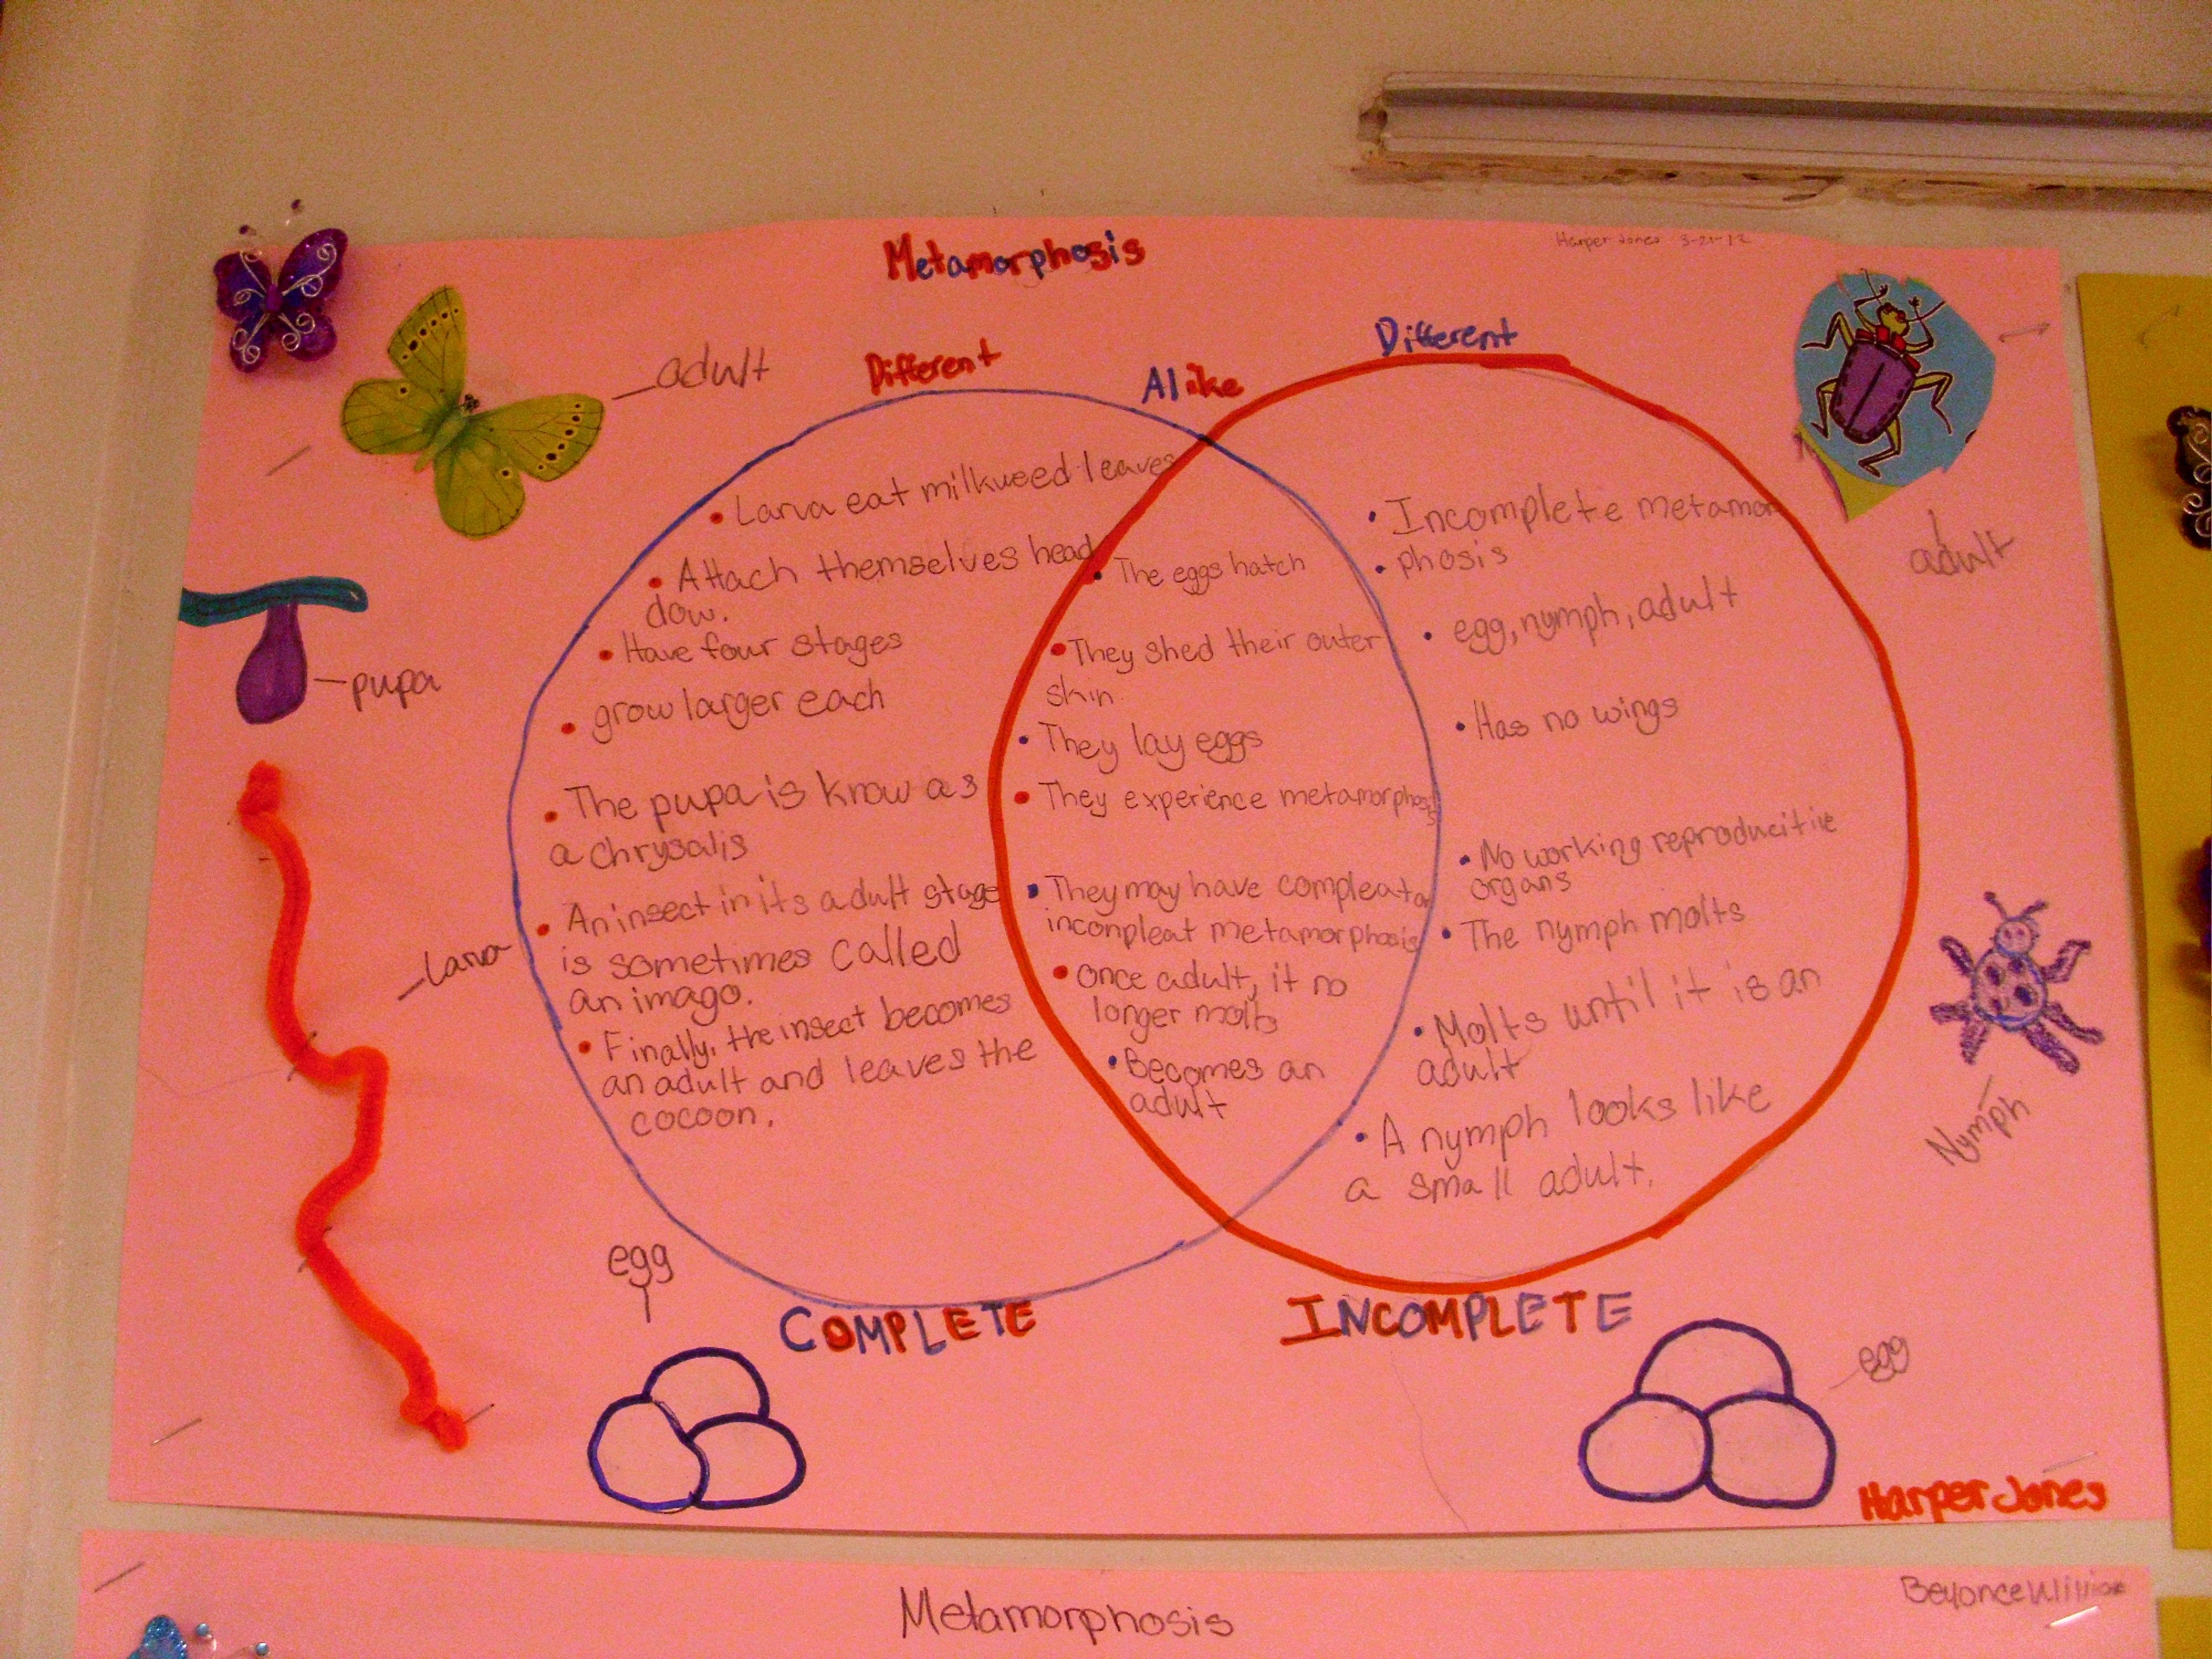 small resolution of complete and incomplete metamorphosis venn diagram fourth grade science elementary science science education